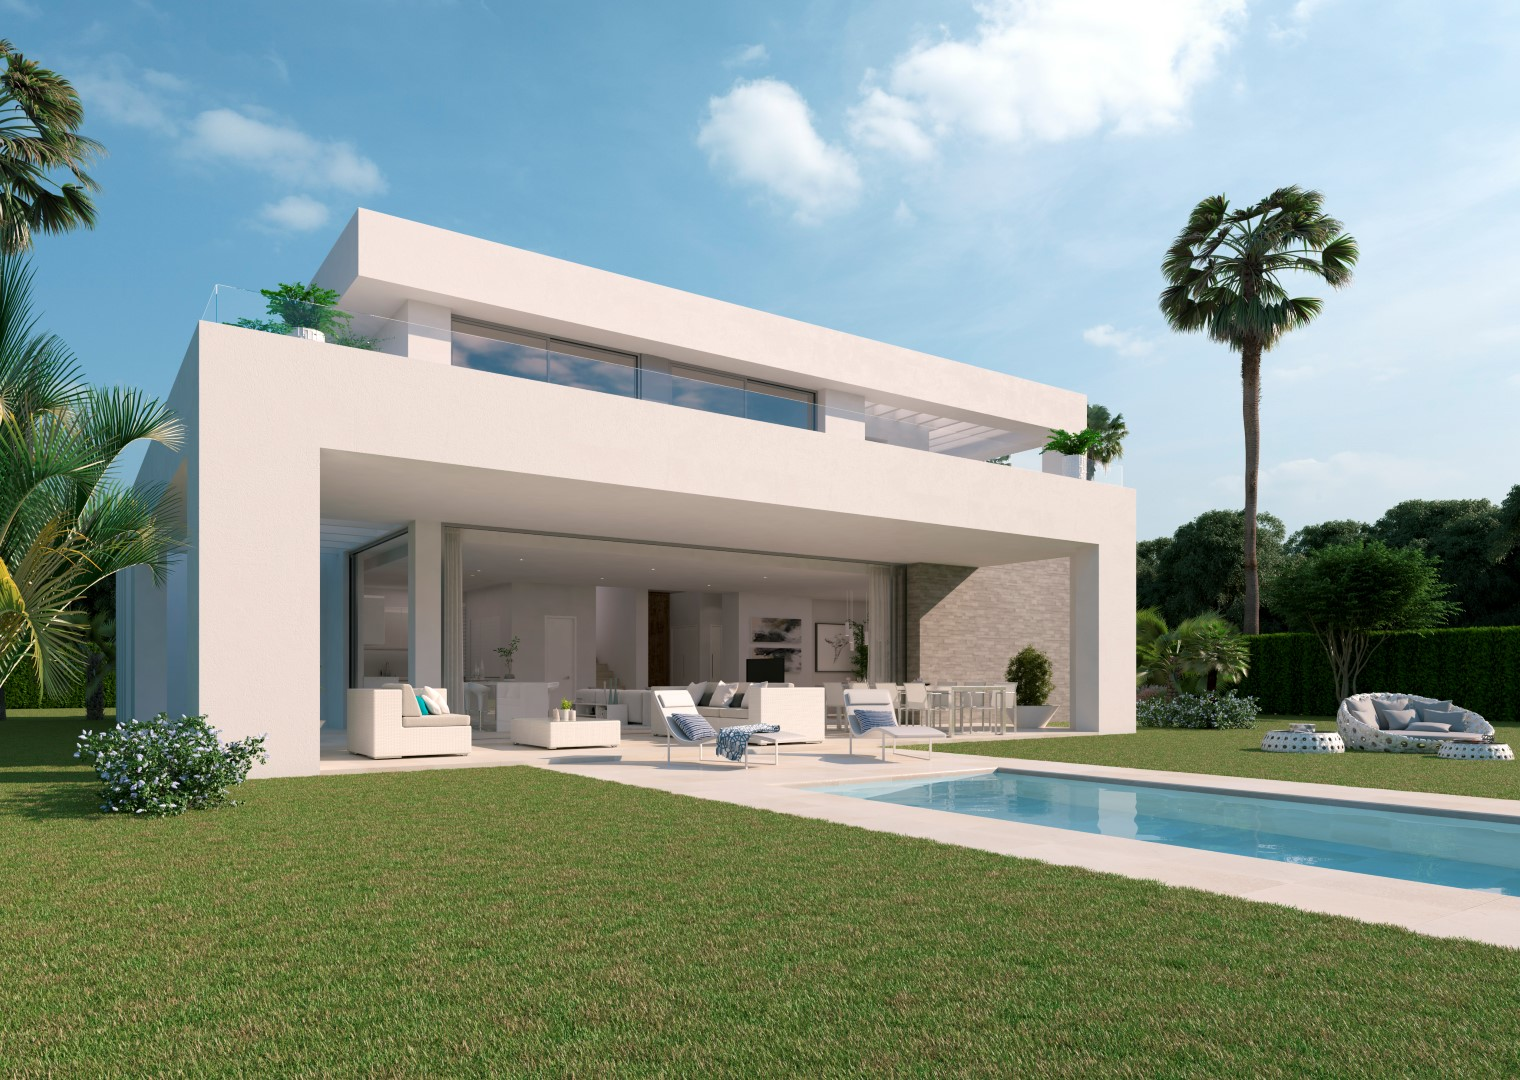 Villas for sale in La Cala de Mijas MV5830167